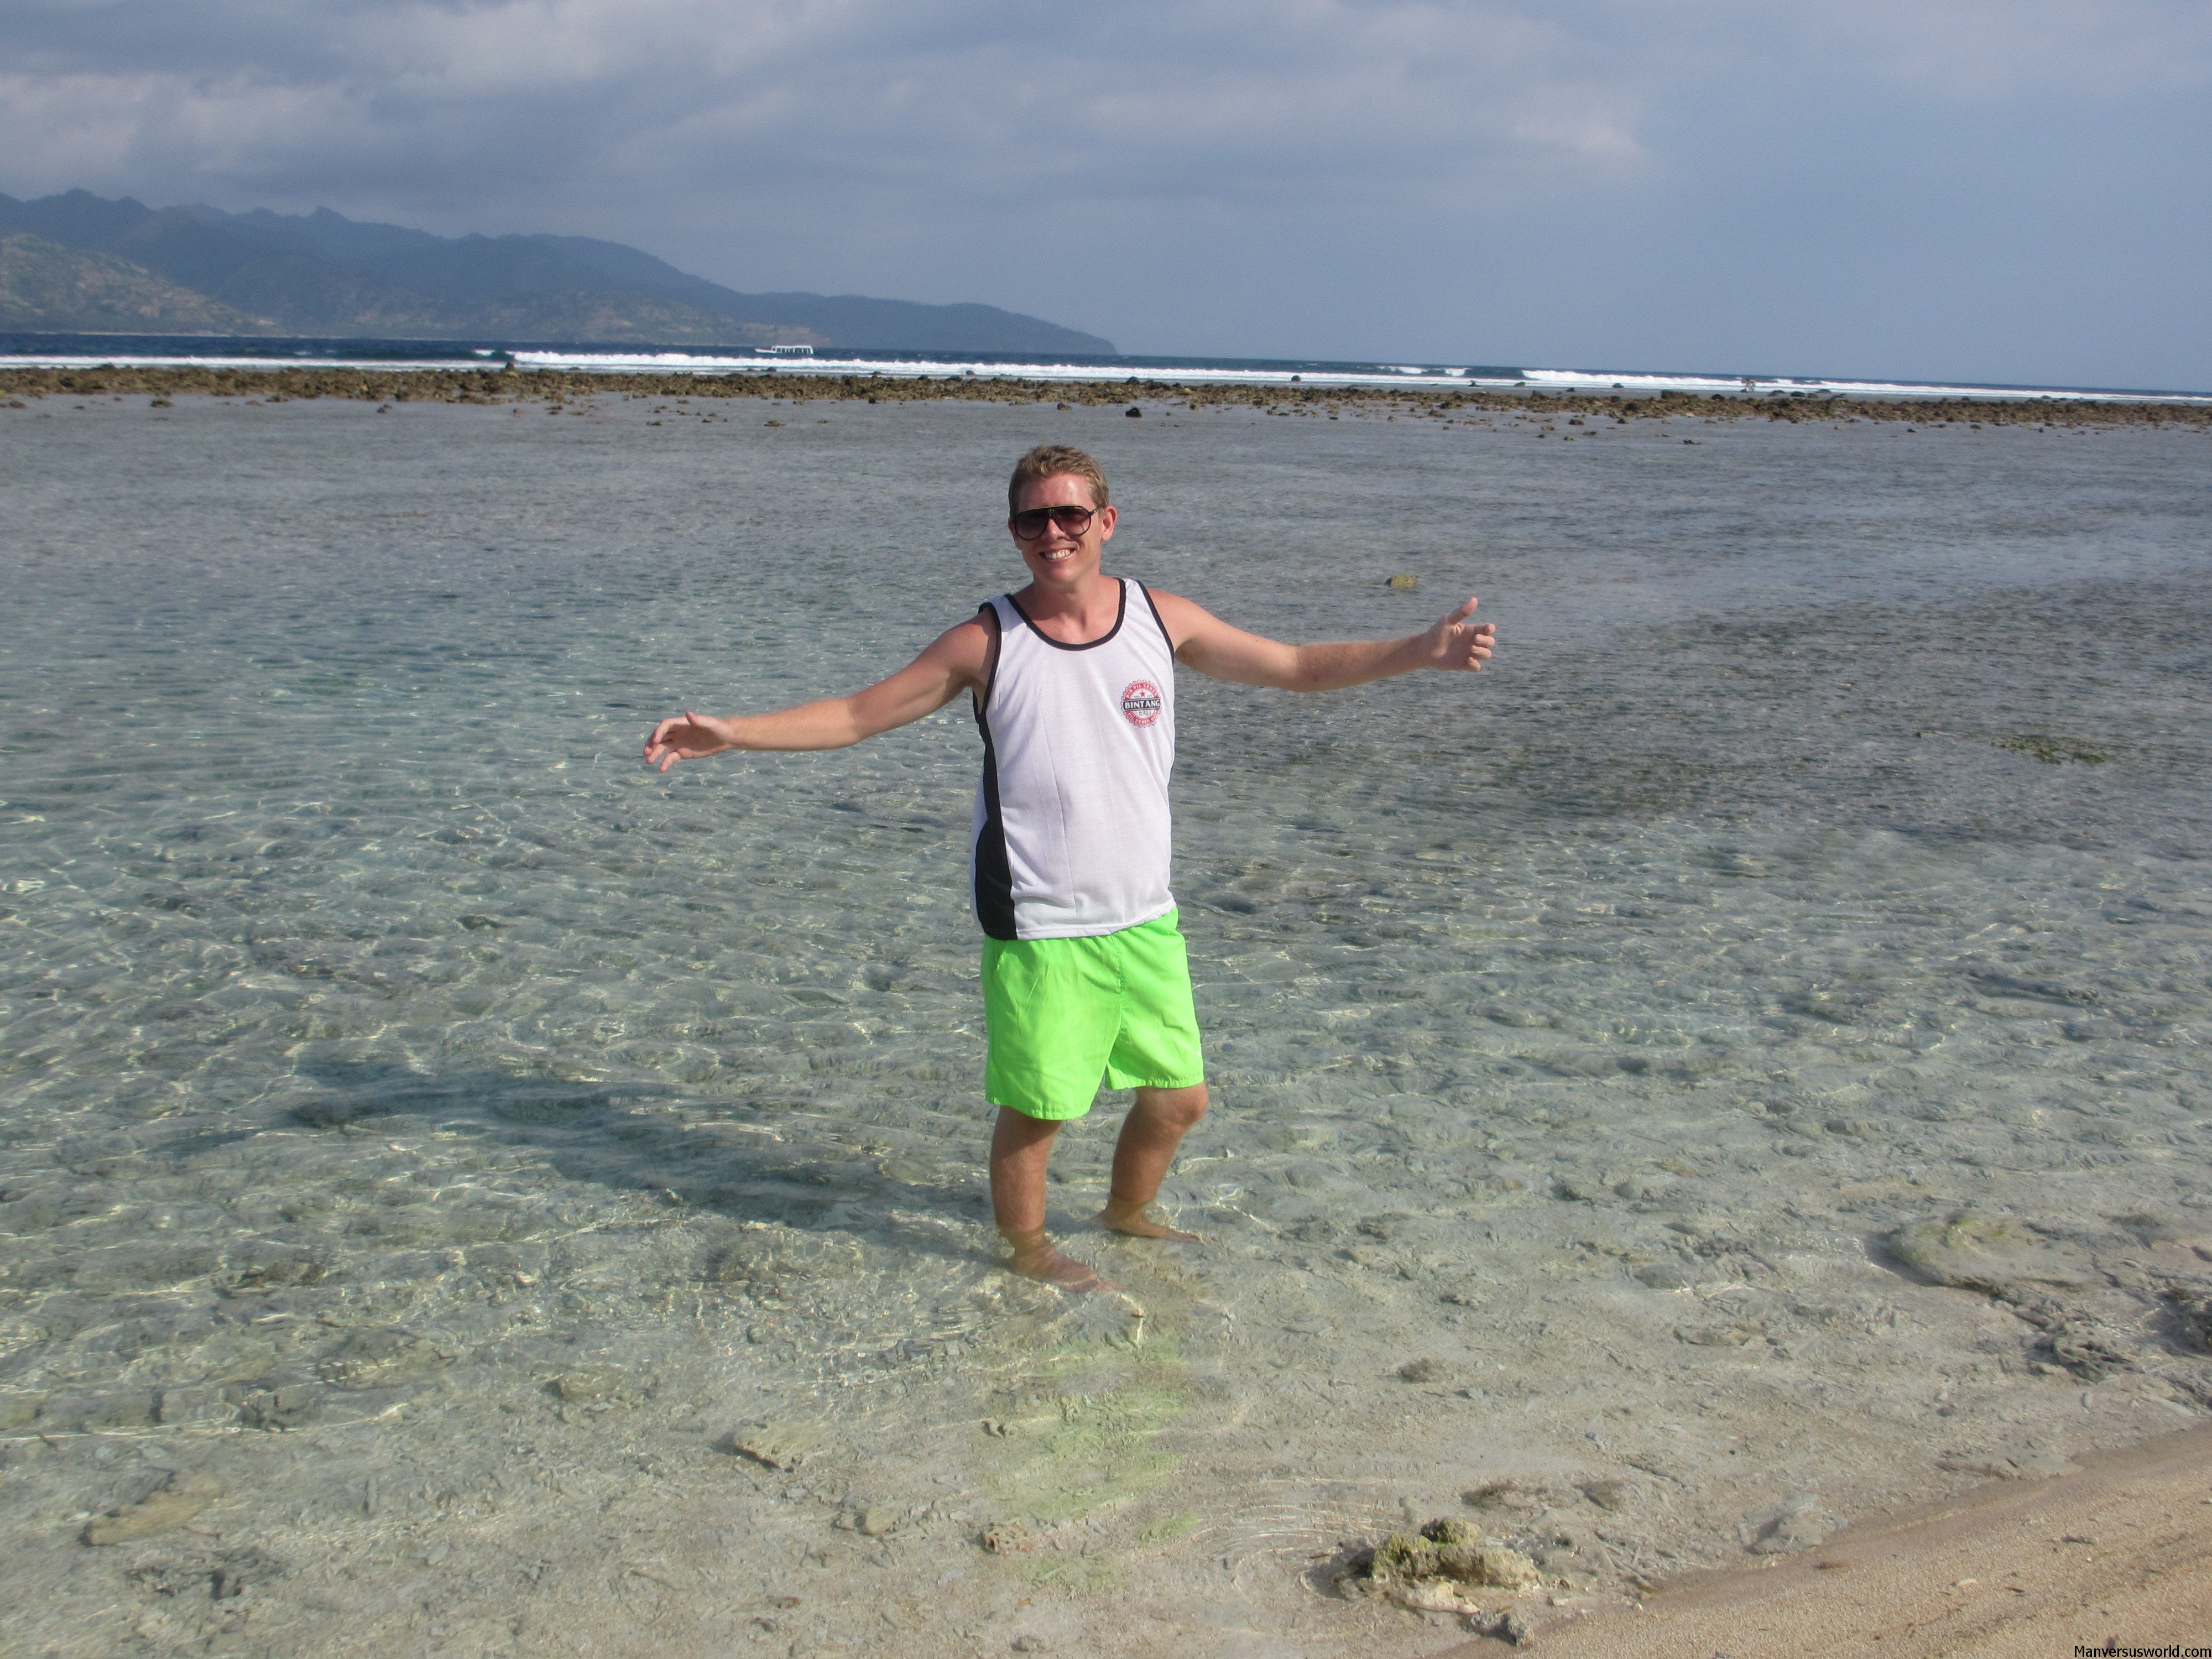 Happy: I take a dip at Gili Trawangan in Indonesia